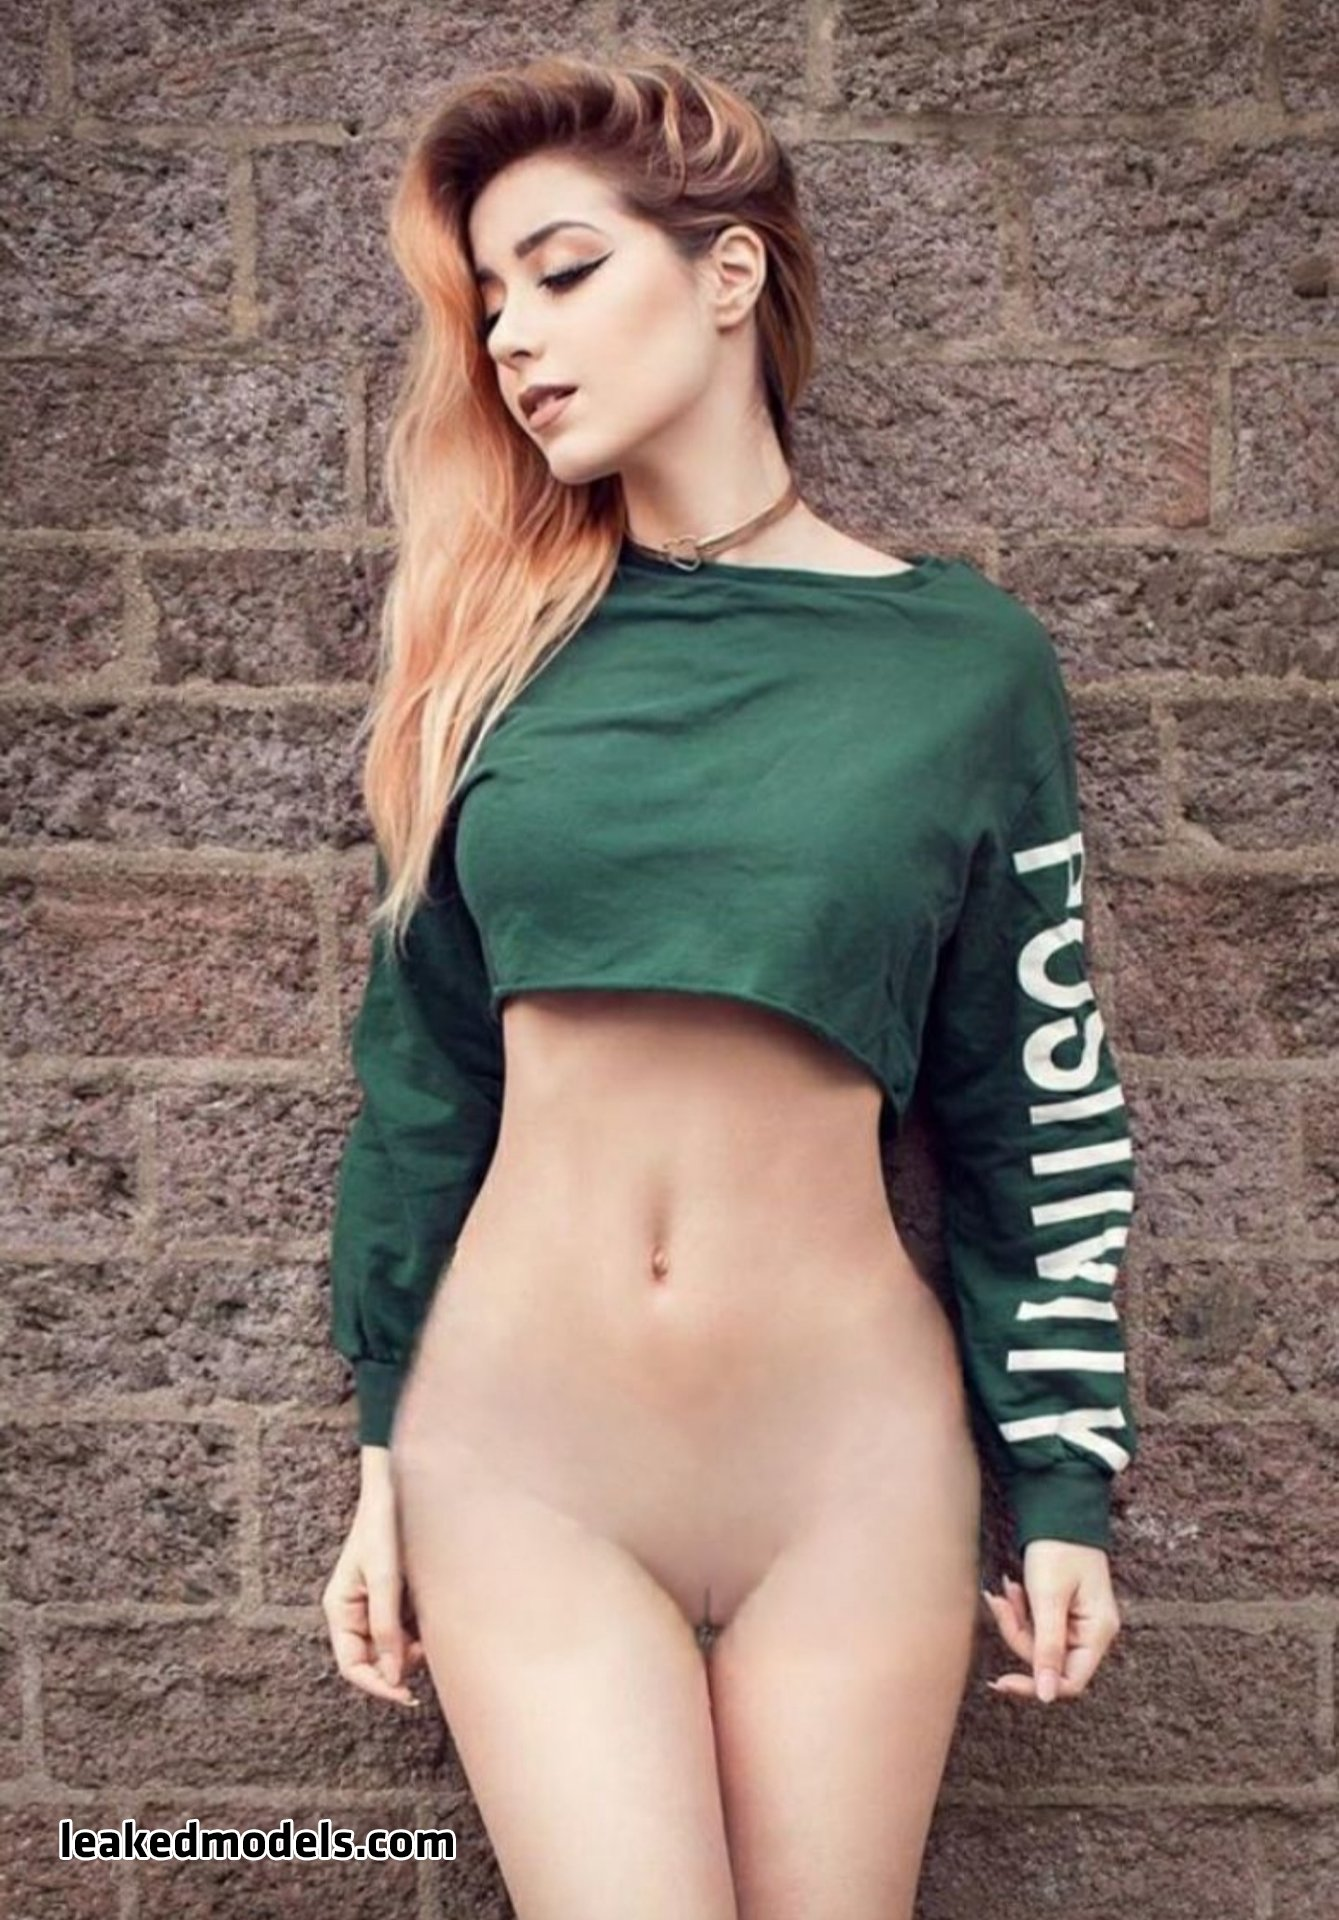 Anni the Duck Instagram Nude Leaks (40 Photos)